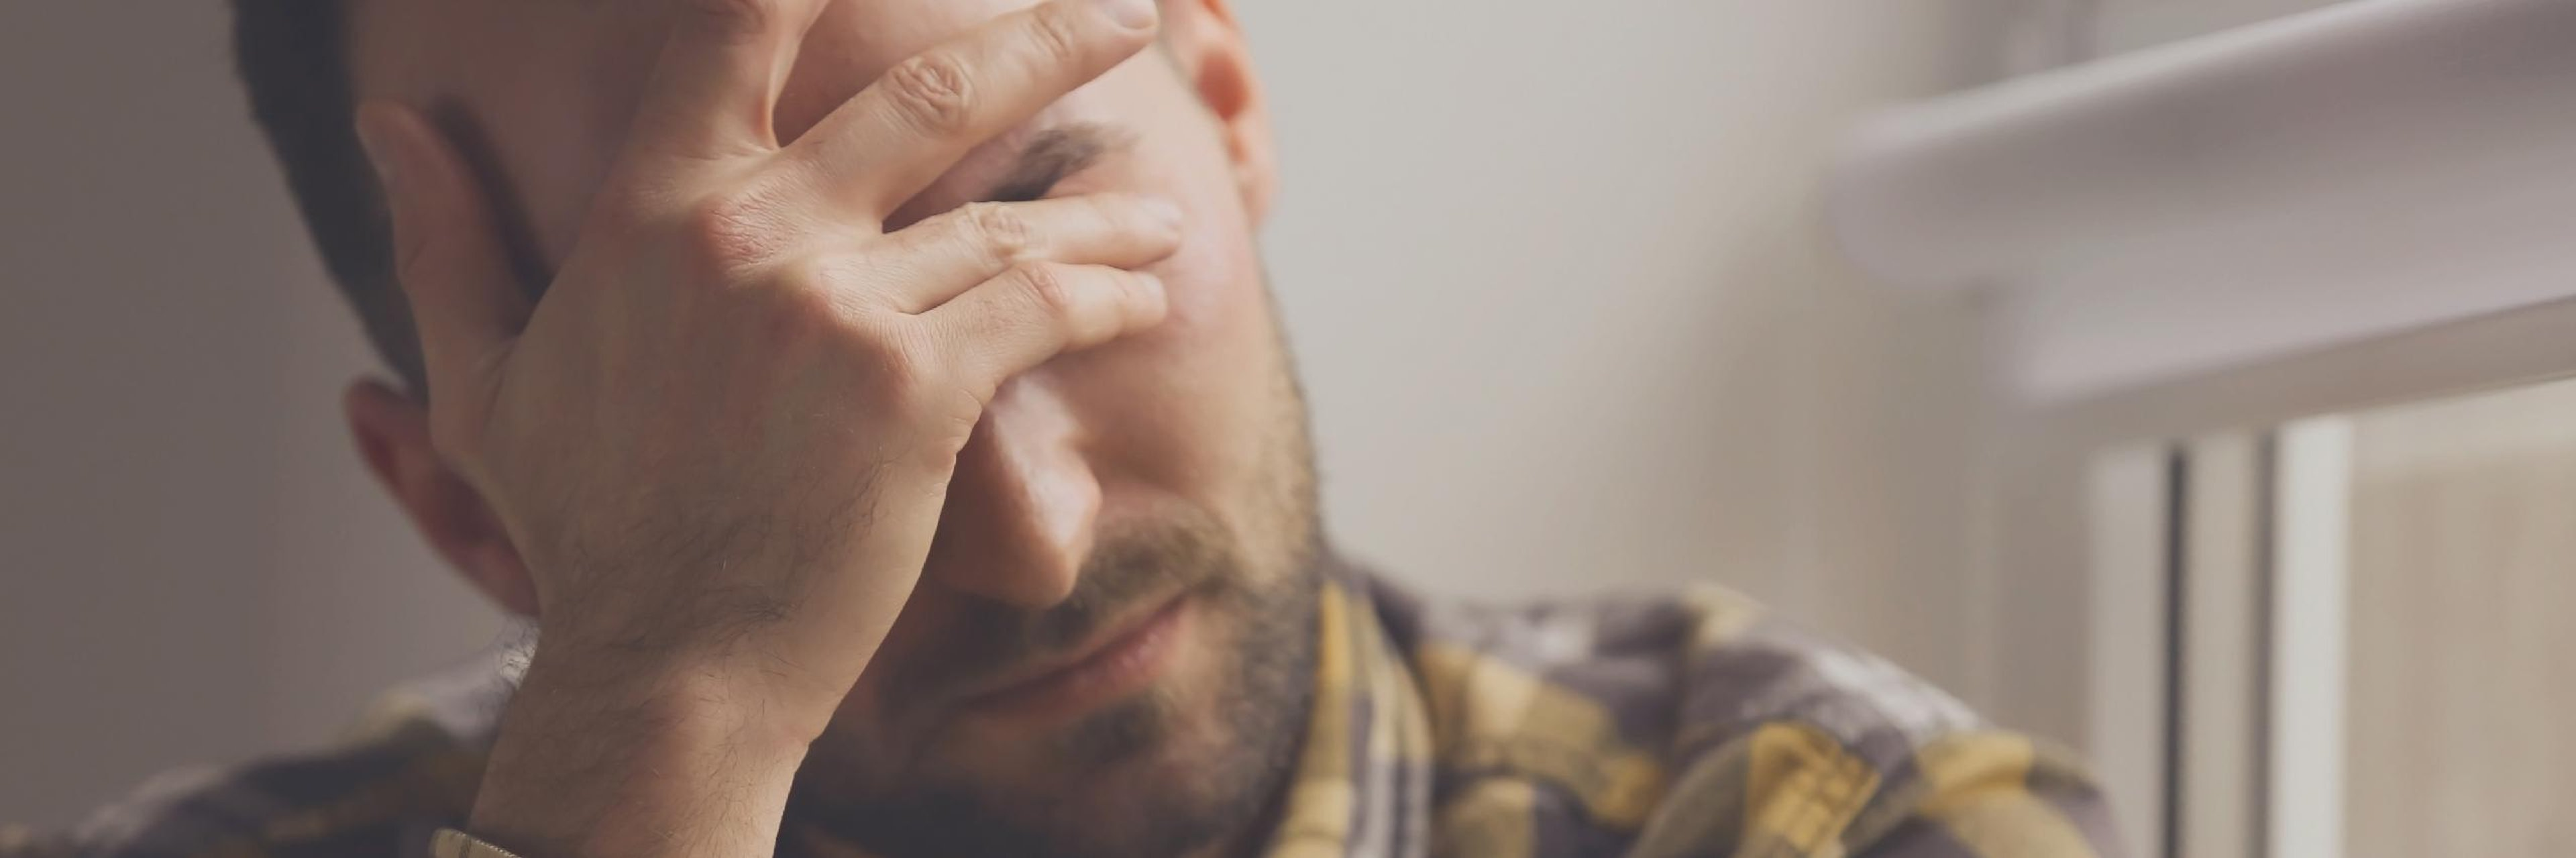 Your Lord Has Not Forsaken You: Addressing the Impact of Trauma on Faith